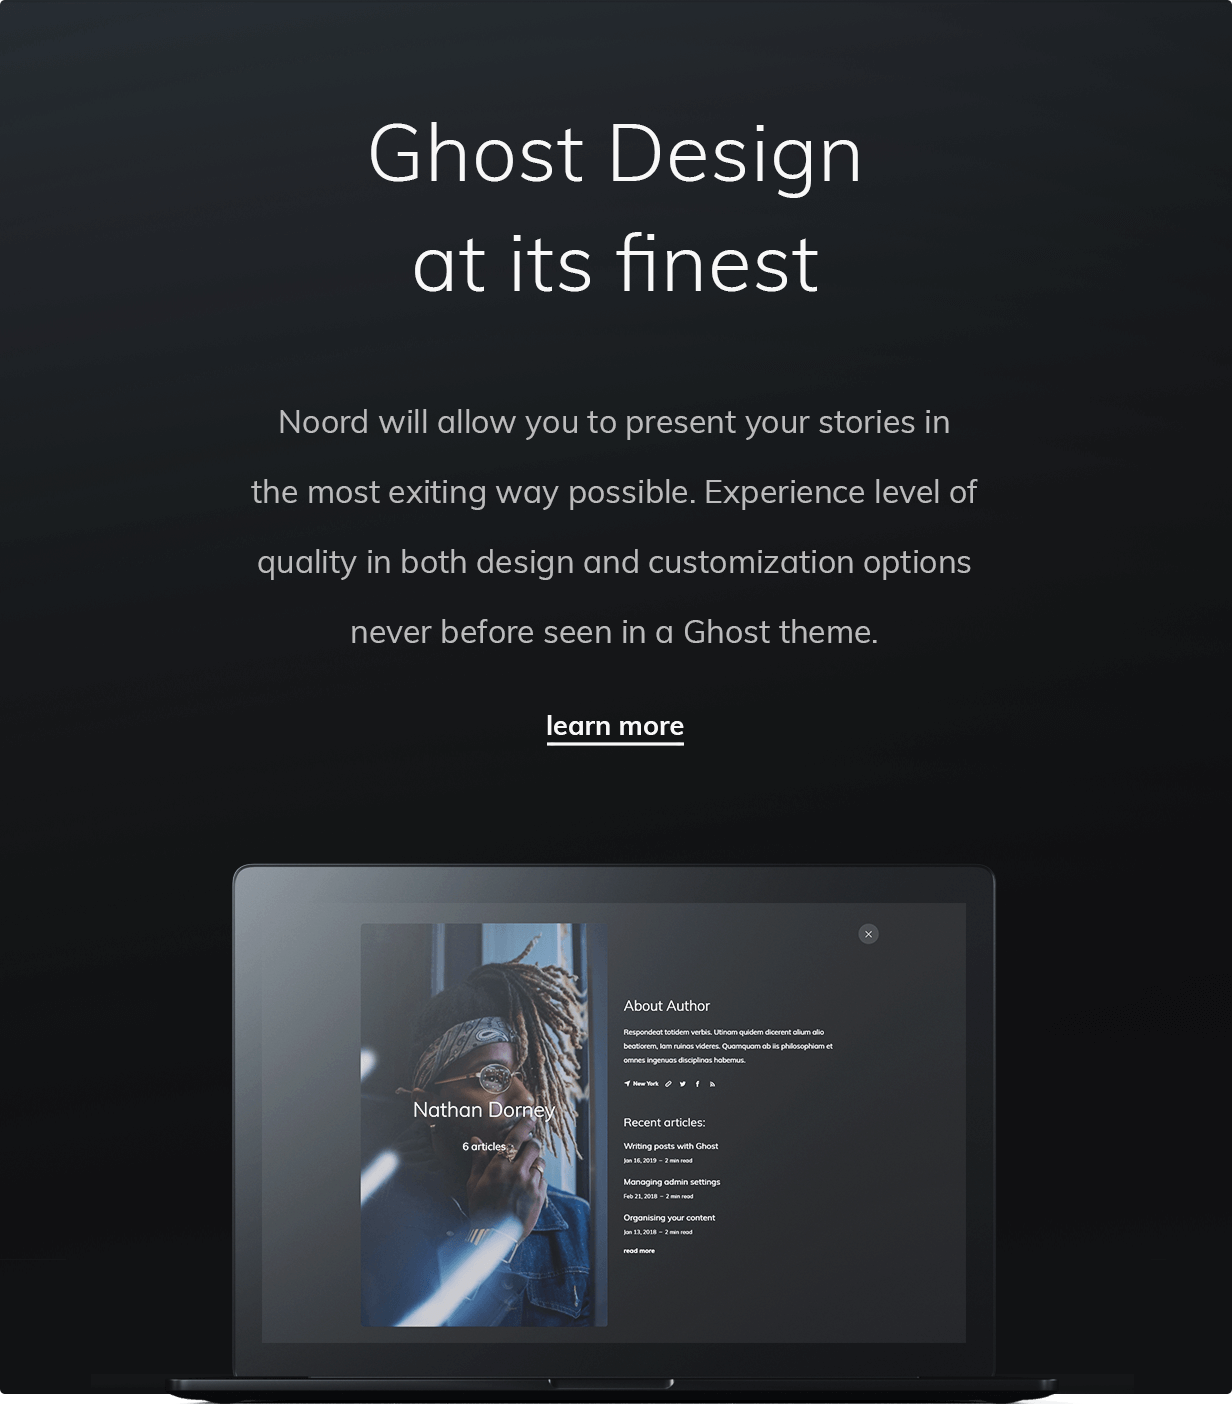 Ghost Design at its finest